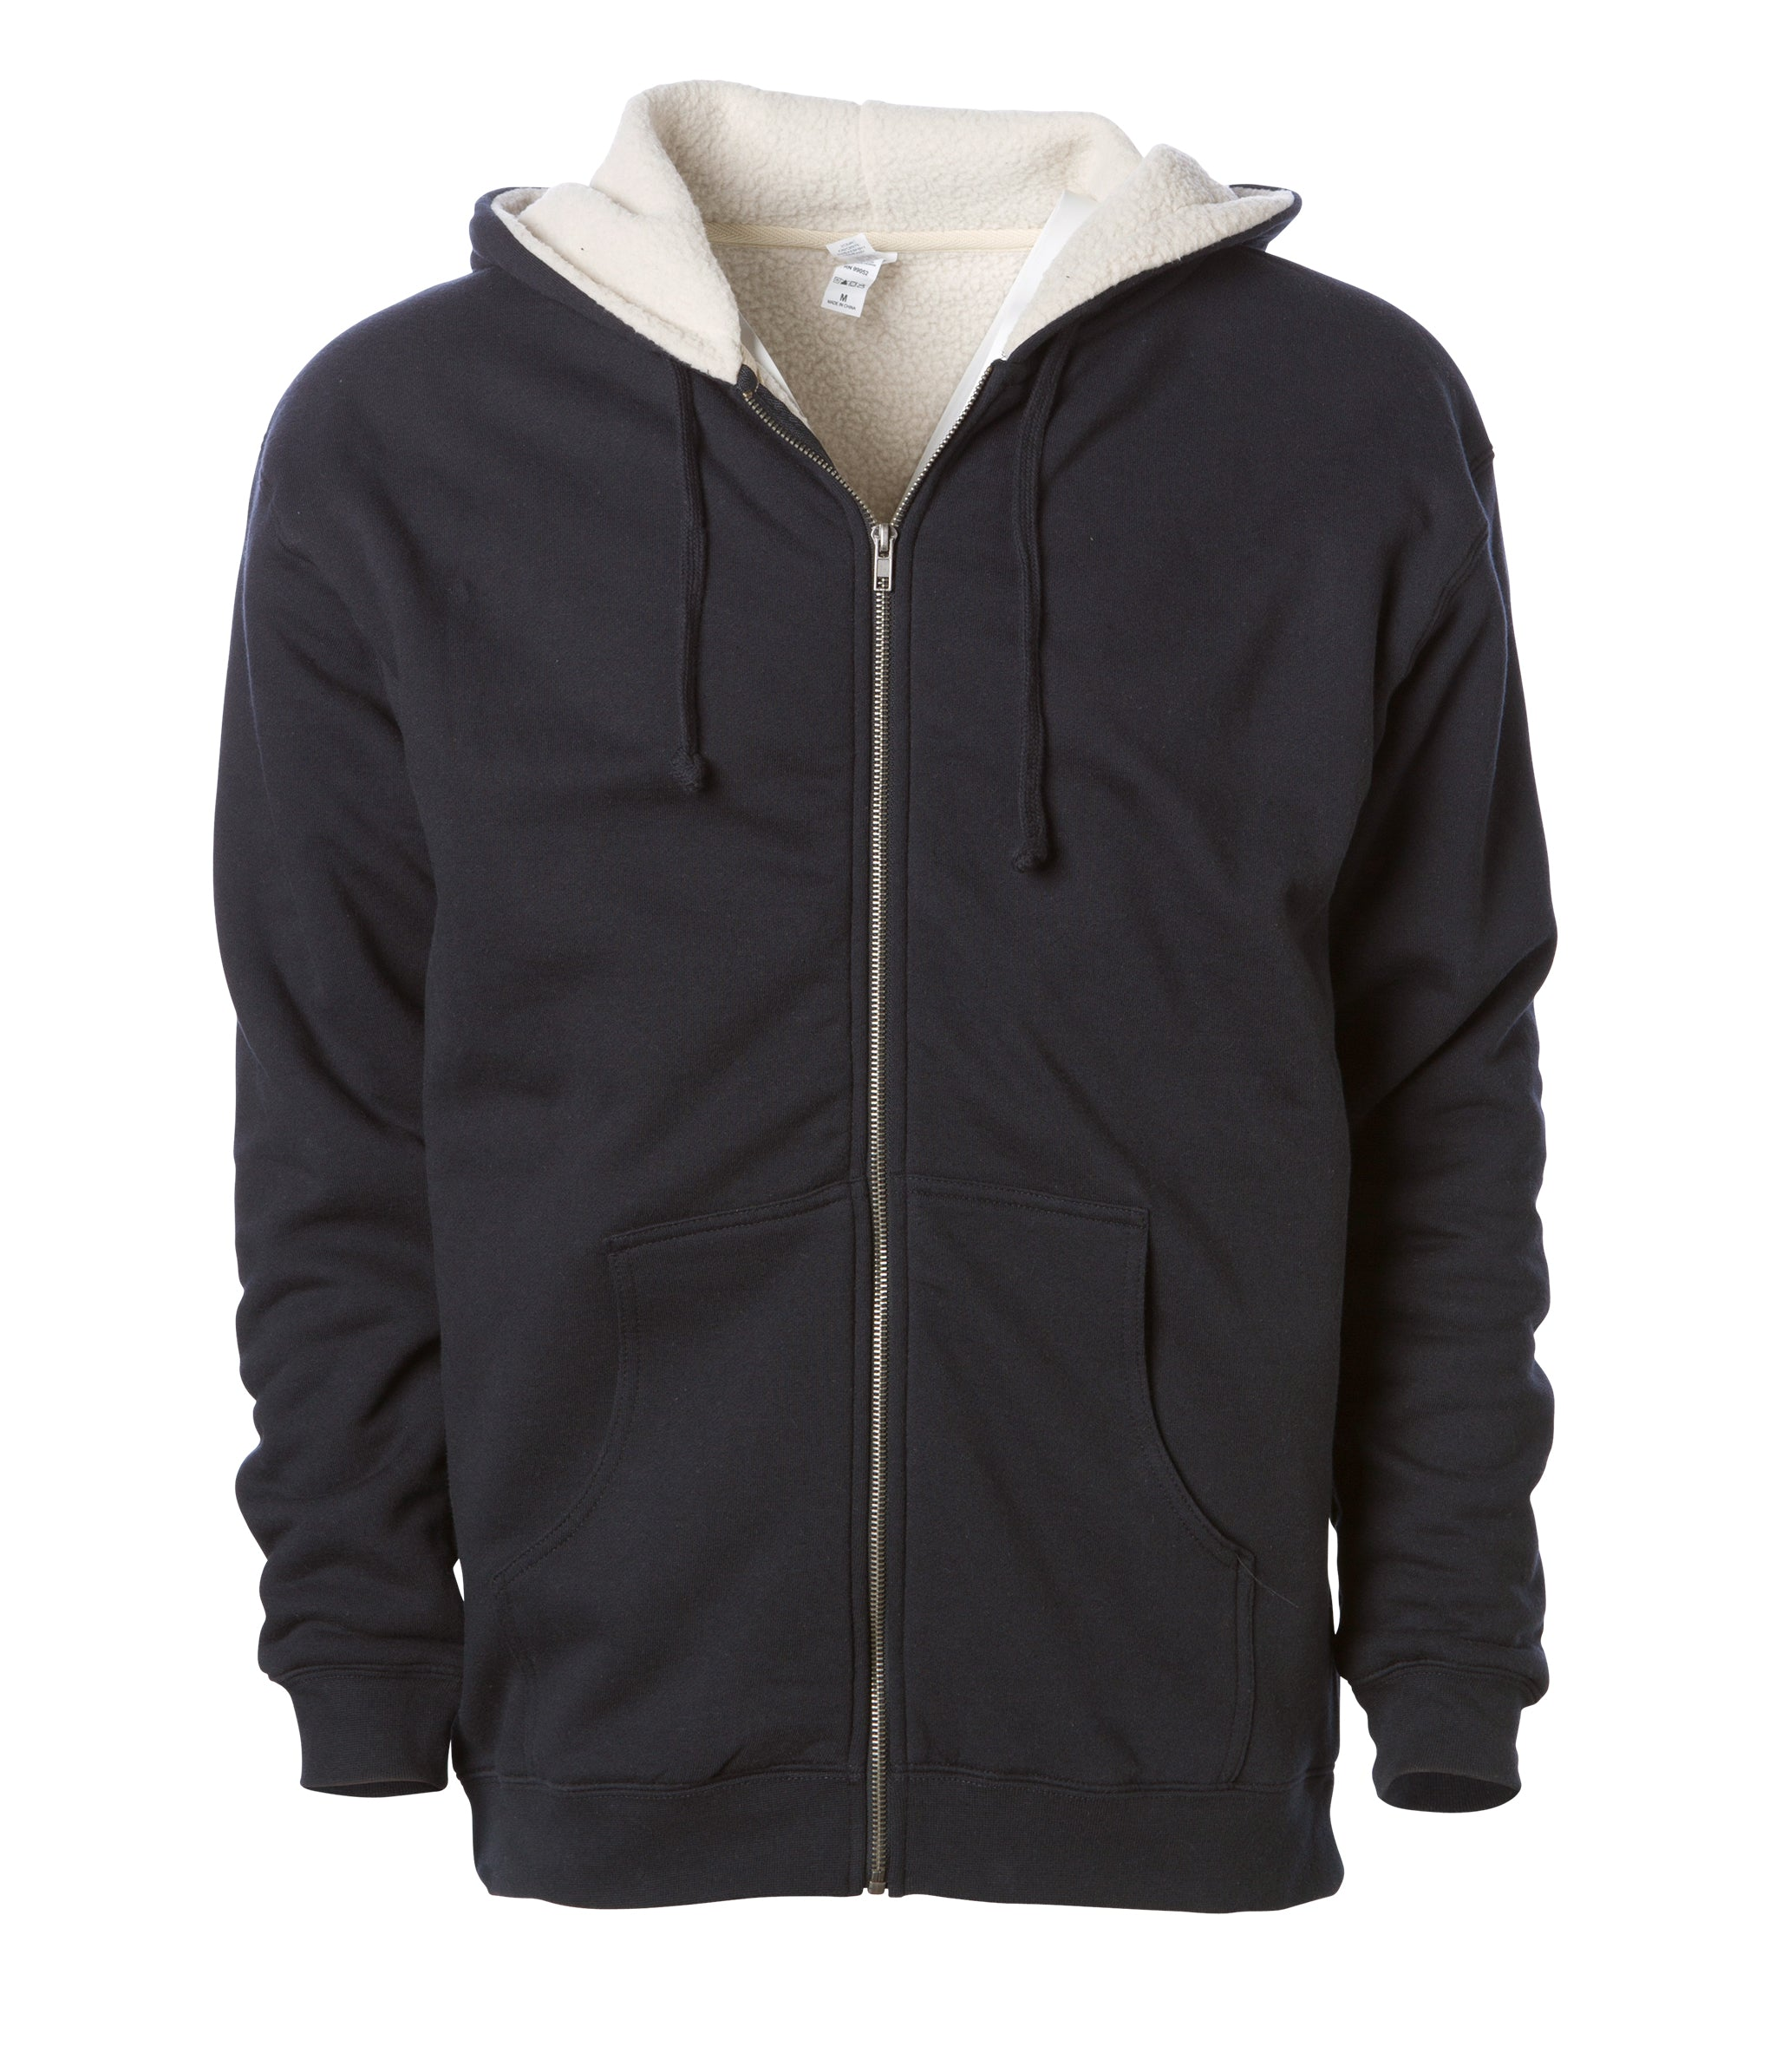 0639fb8a1 Sherpa Lined Zip Hooded Sweatshirts